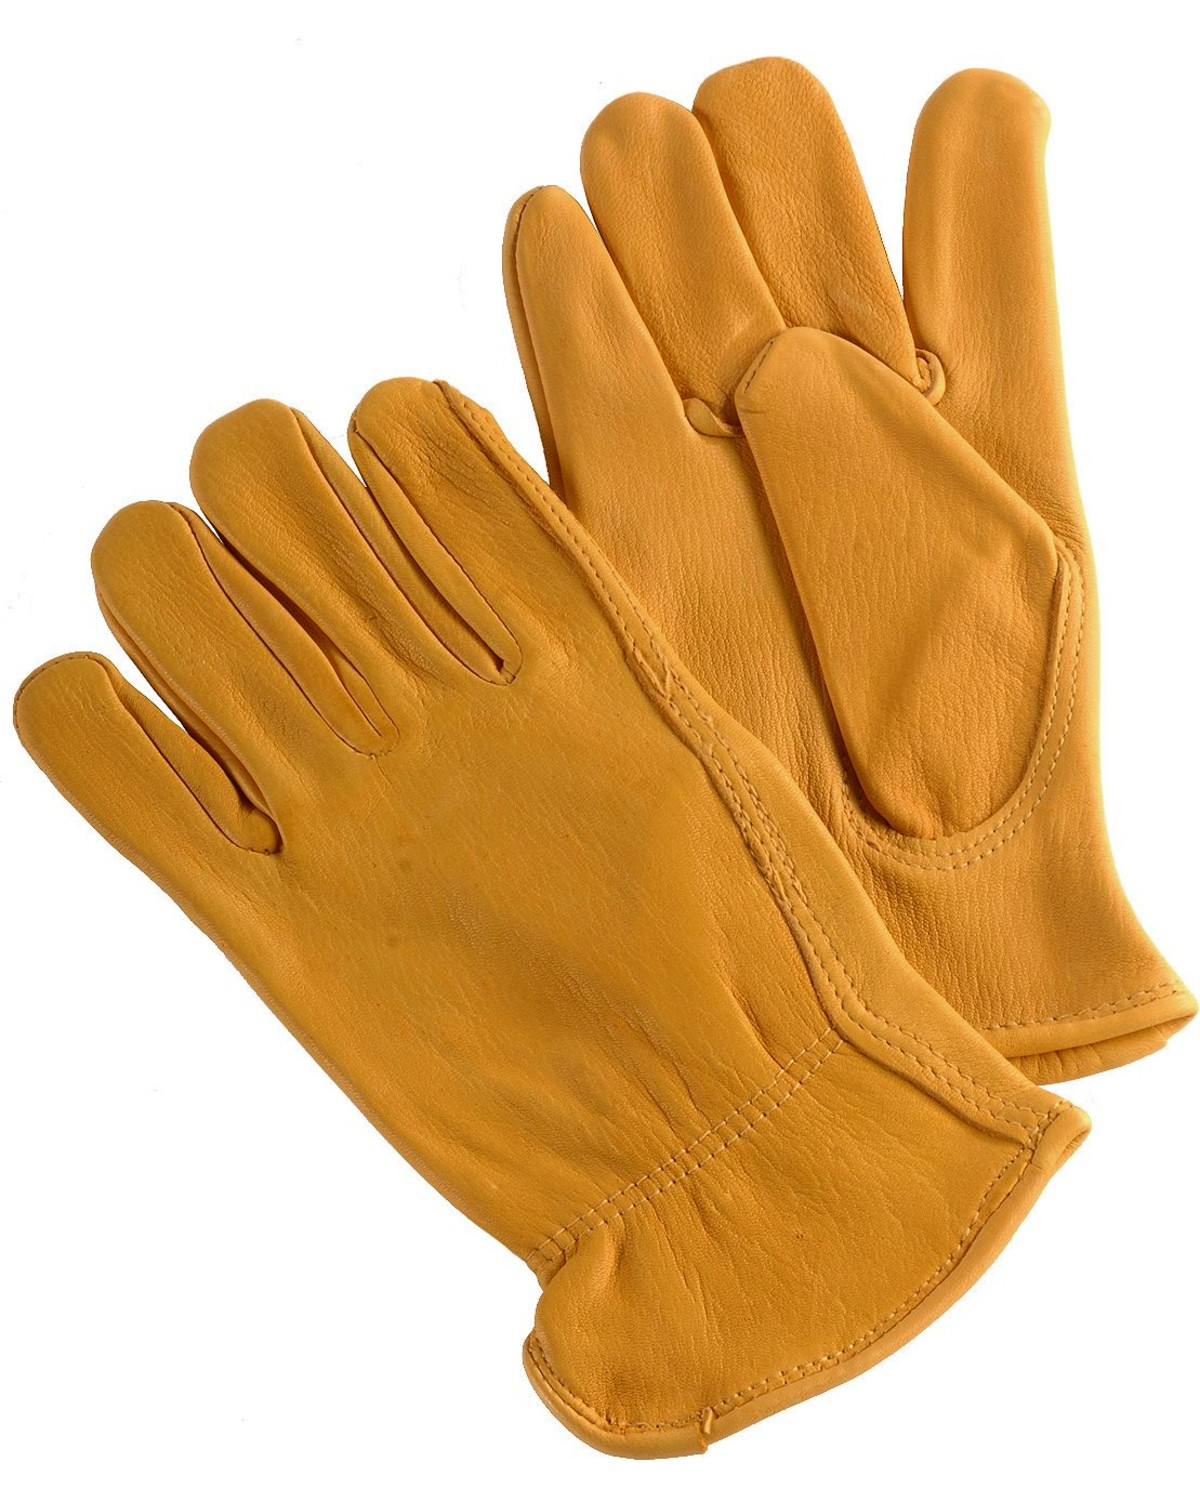 Justin leather work gloves - Hd Xtreme Deerskin Gloves Tan Hi Res